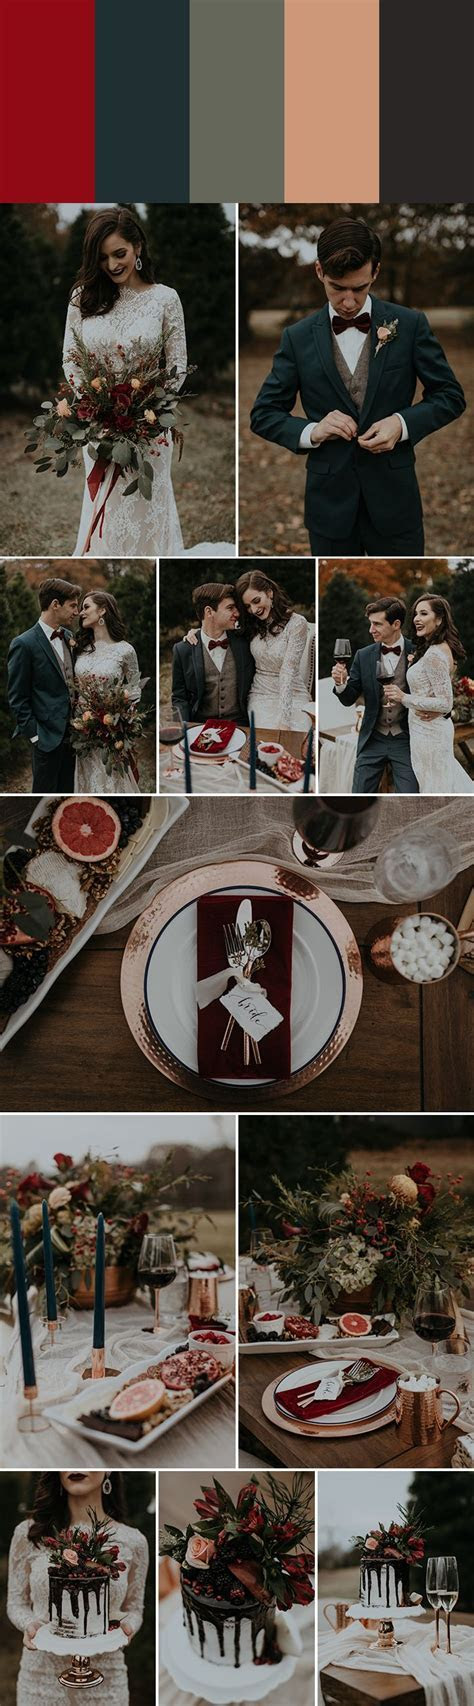 Best 25  Winter wedding colors ideas on Pinterest